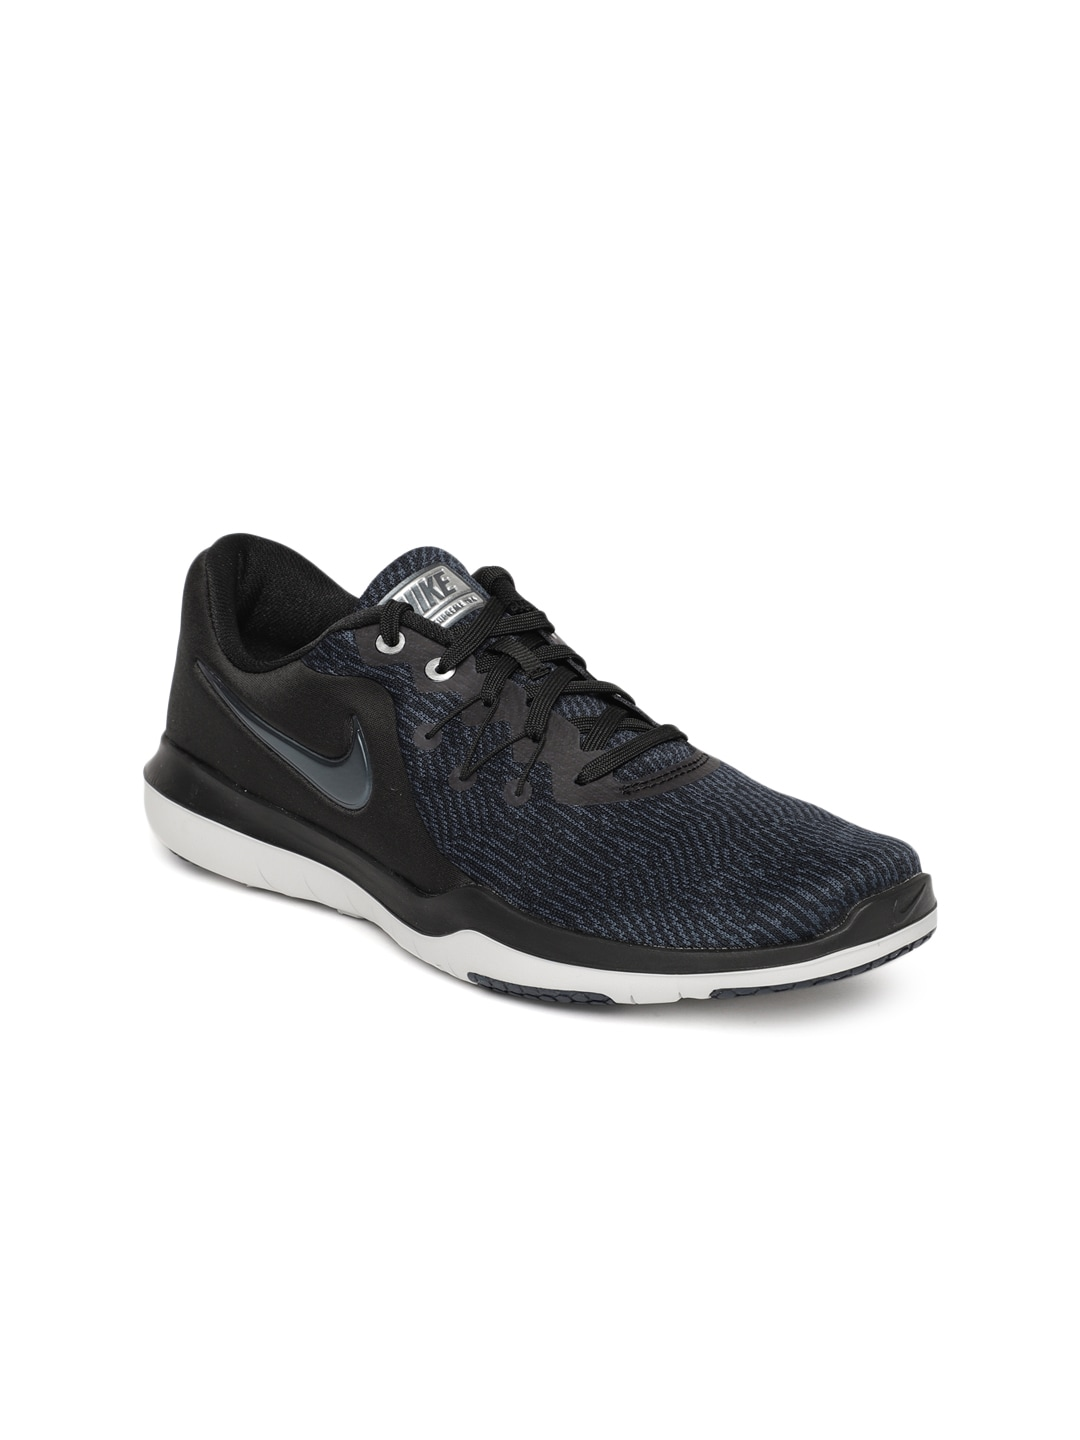 low priced 7b484 edacb Nike Navy Blue Blue Shoes - Buy Nike Navy Blue Blue Shoes online in India